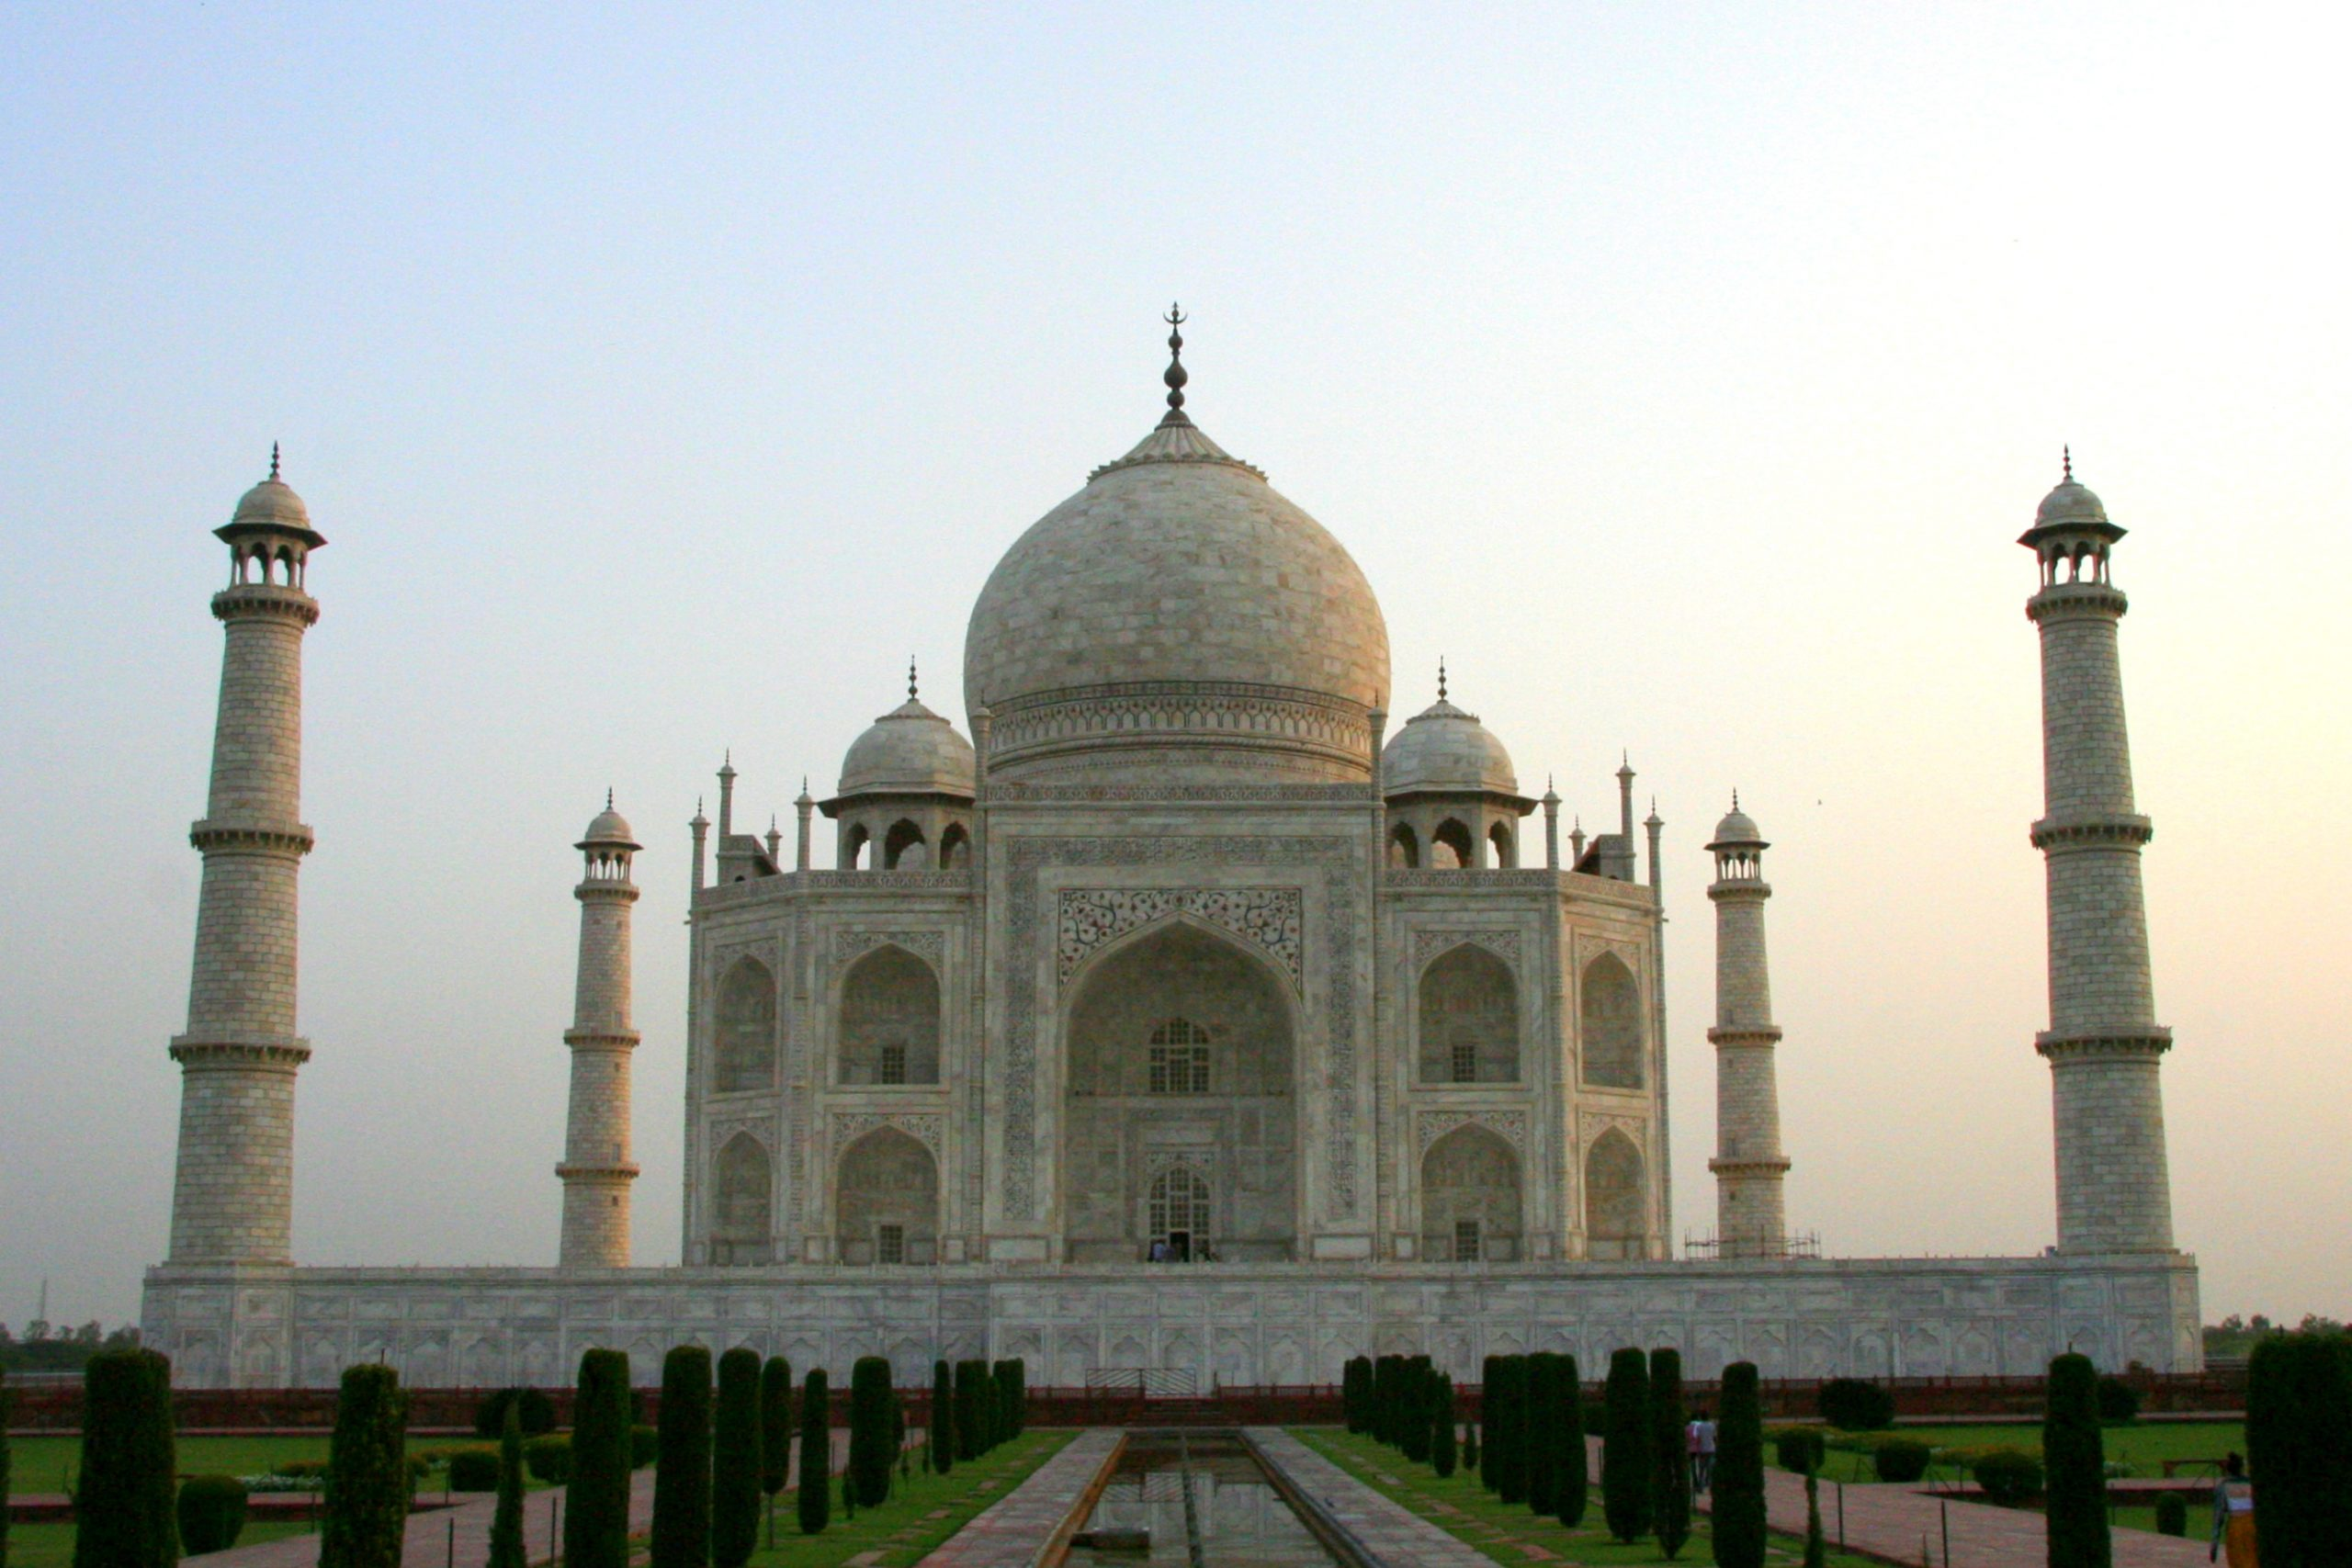 2015, Taj Mahal, Agra, India